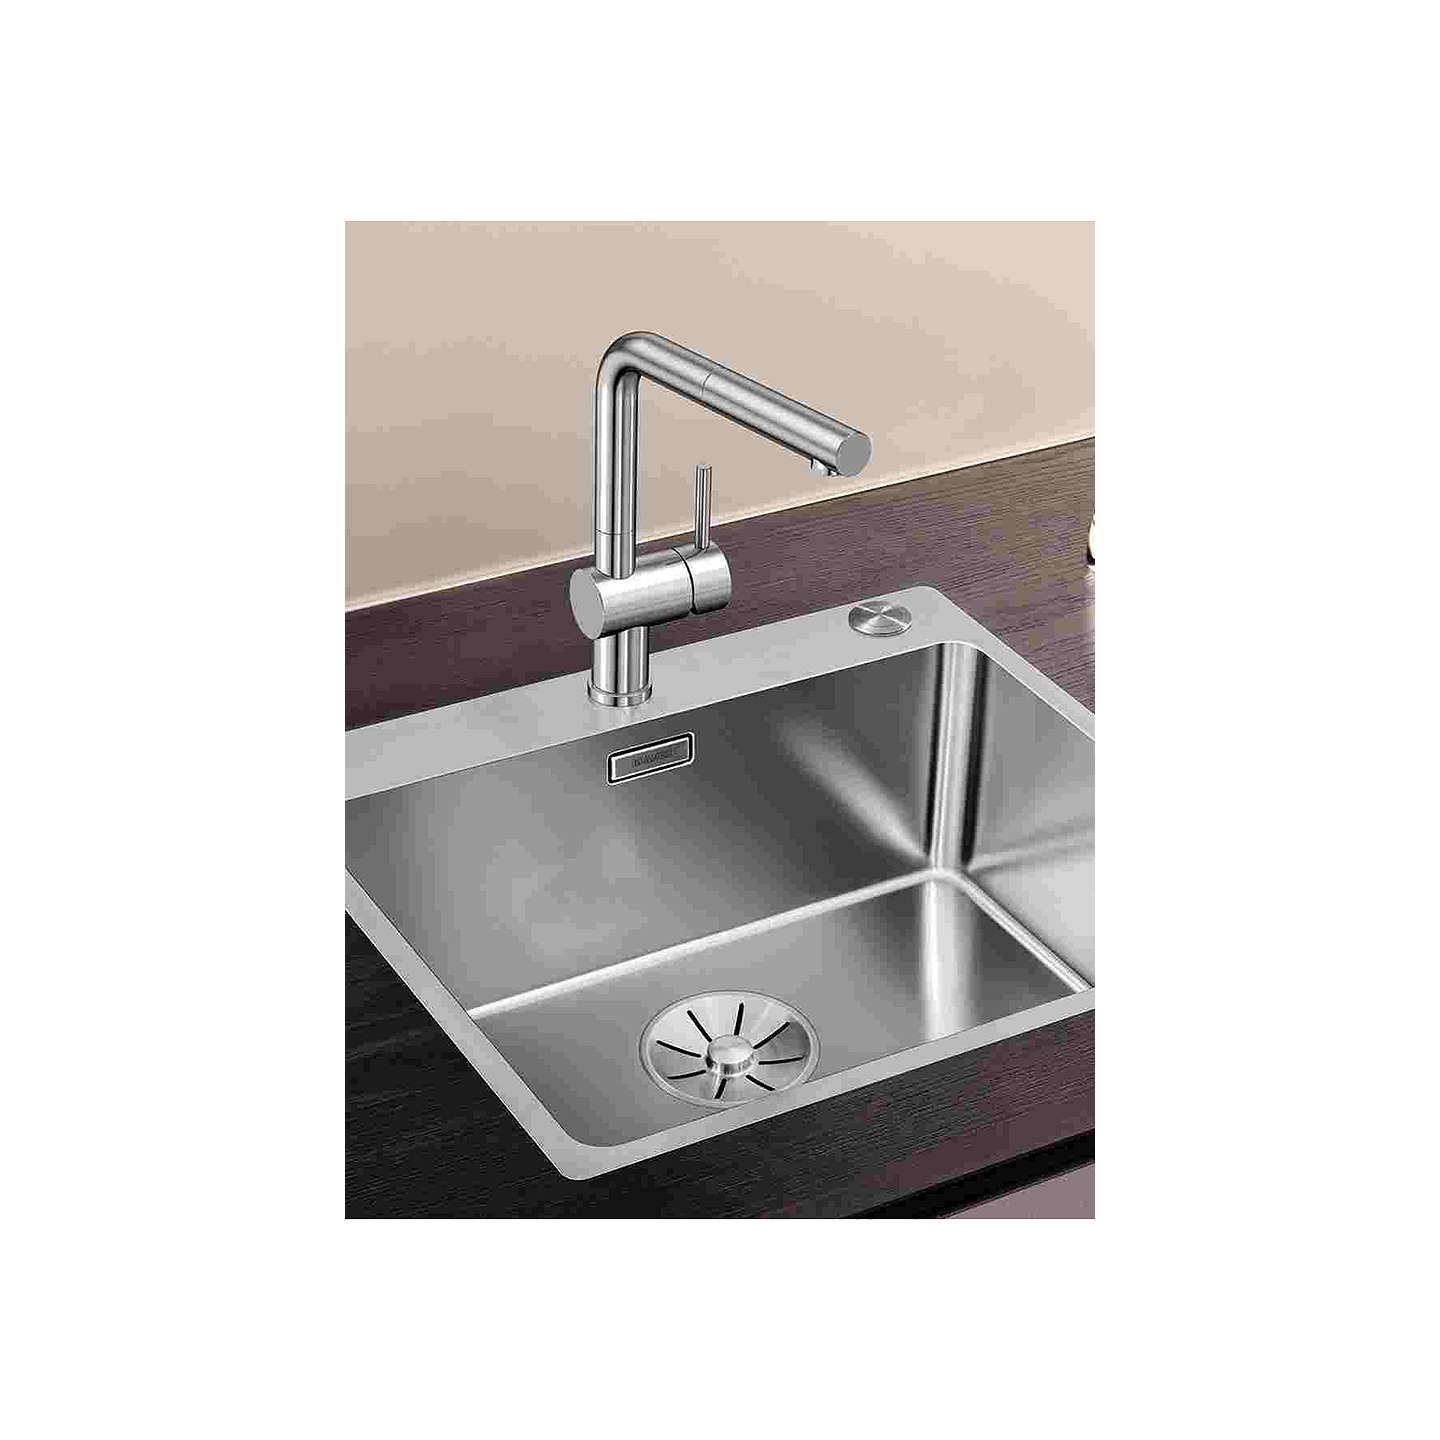 Inset Kitchen Sink Magnificent inset kitchen sink adornment home design ideas and blanco andano 500ifa single bowl inset kitchen sink stainless steel workwithnaturefo